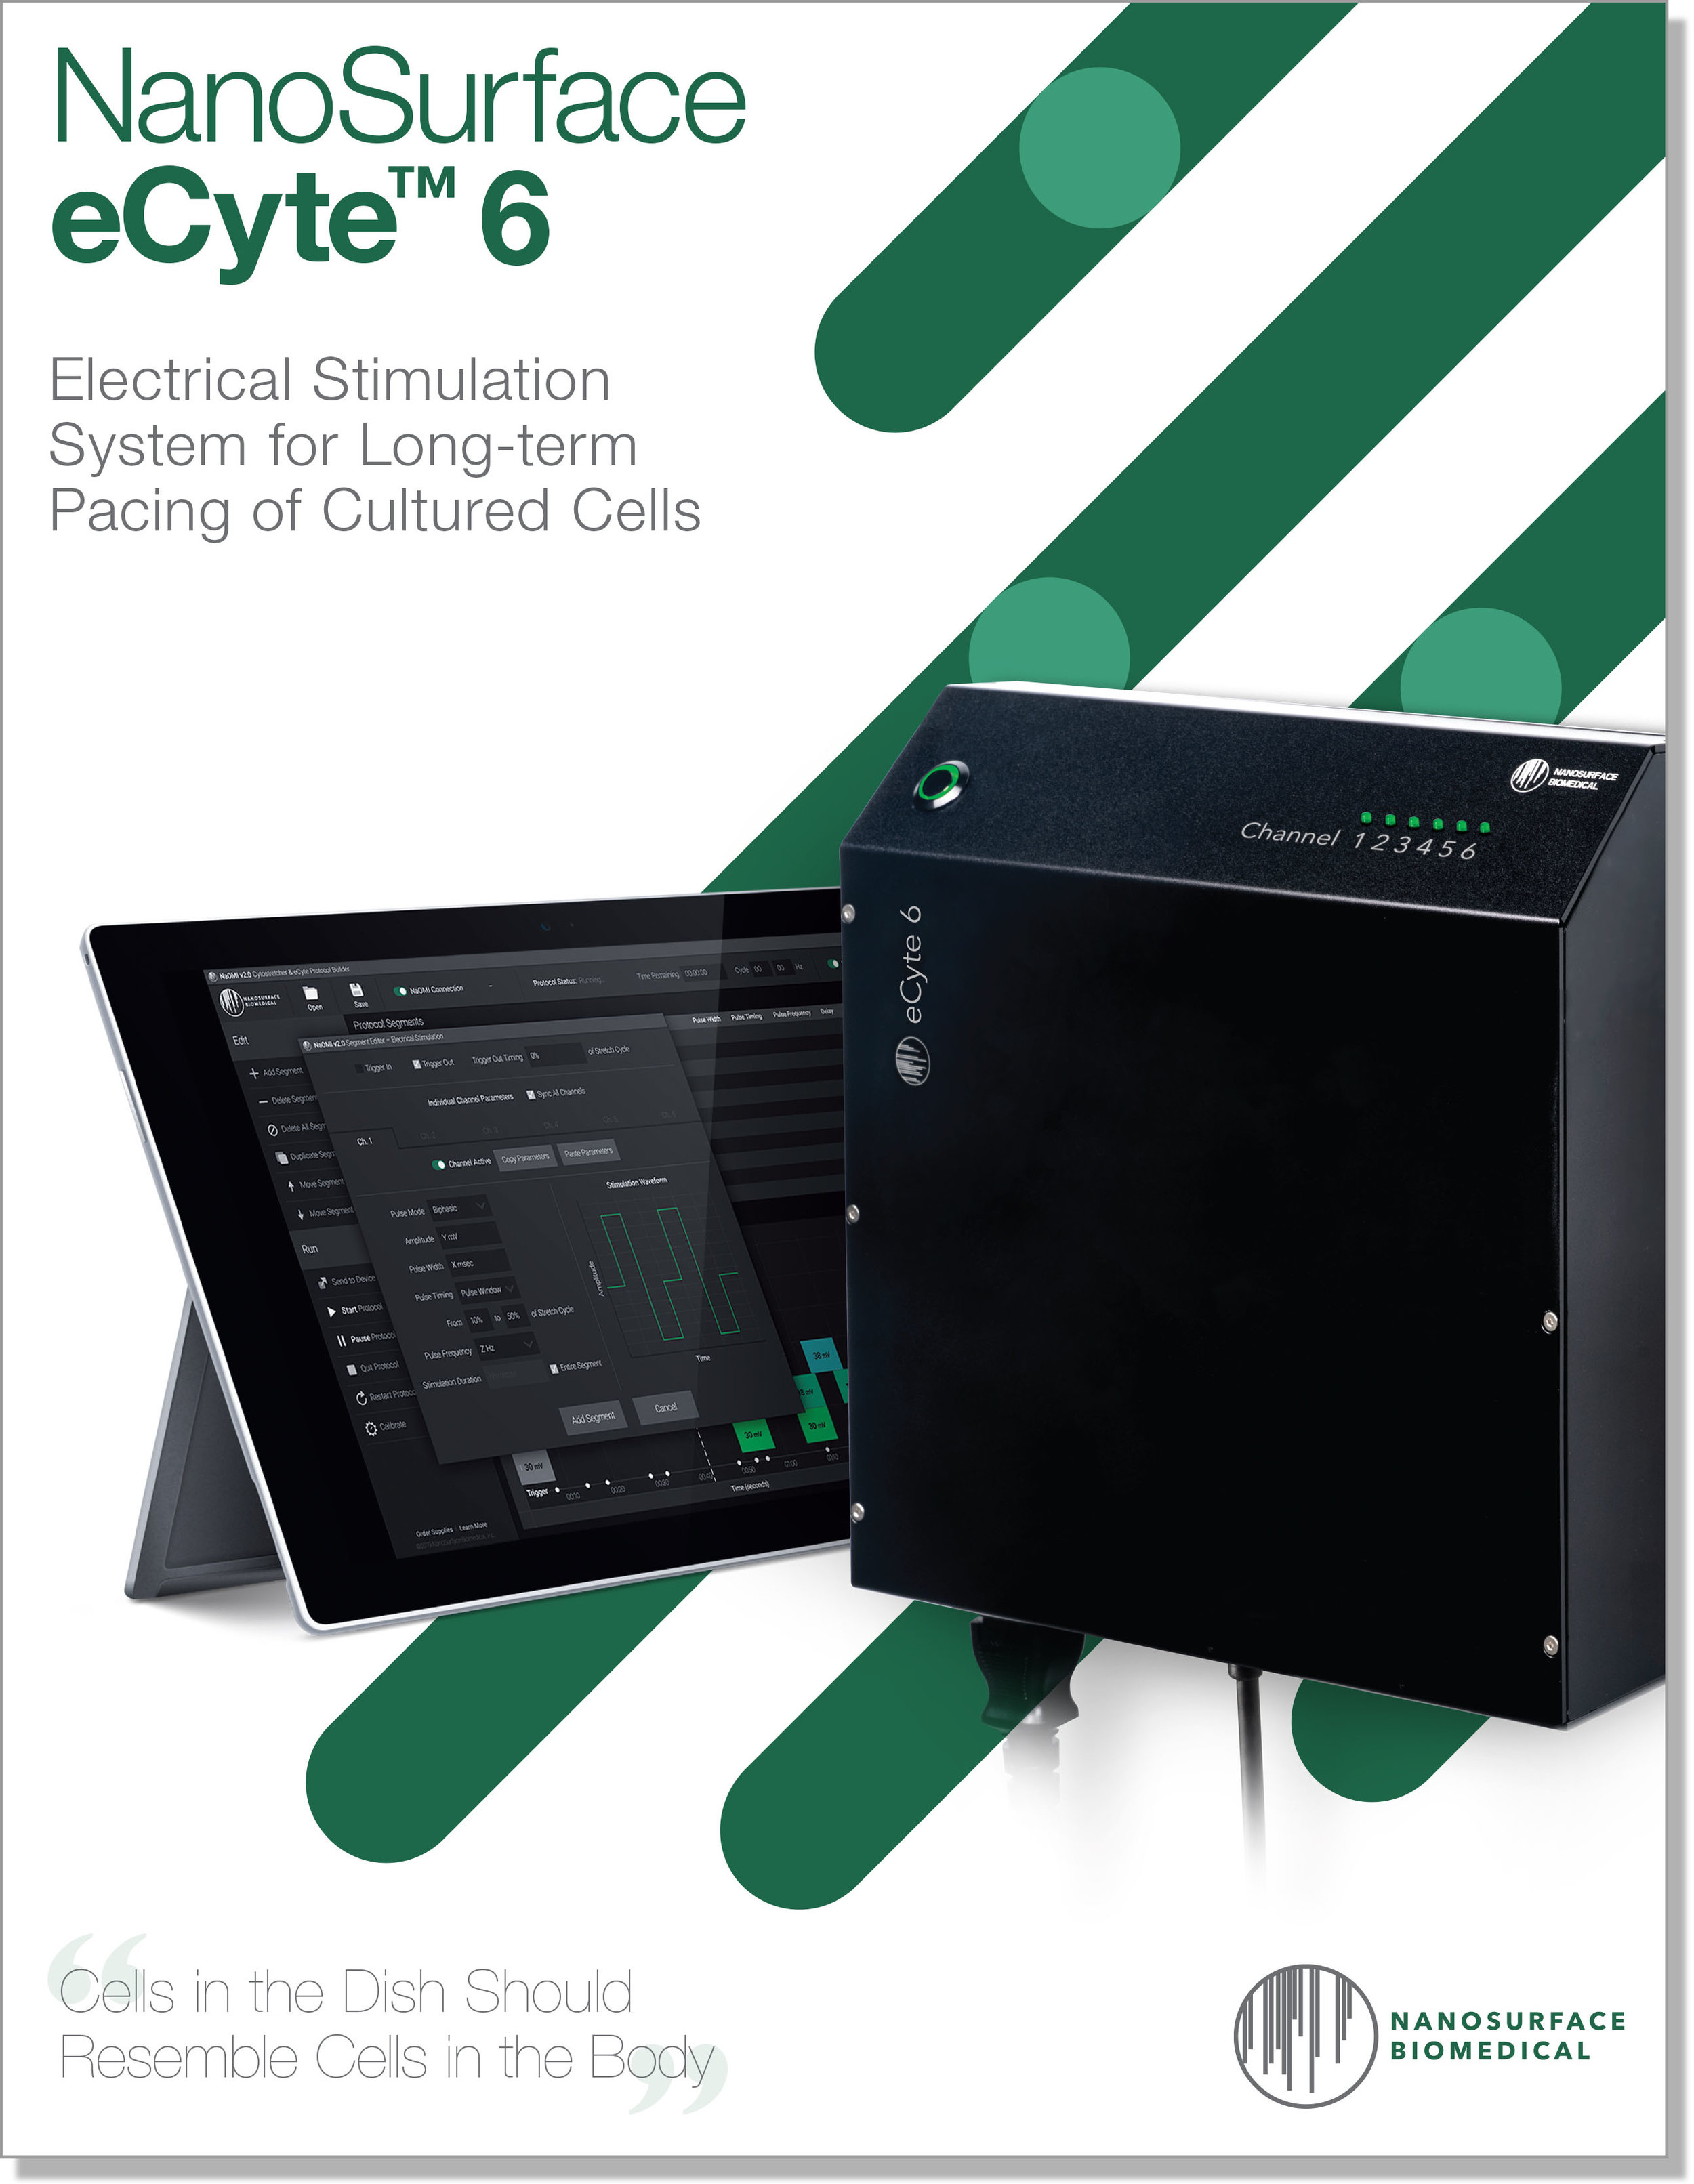 NanoSurface eCyte 6 Electrical Stimulation System Brochure - Download the NanoSurface eCyte 6 system brochure for information about the electrical stimulation system in a convenient PDF format. For additional information, please contact support@nanosurfacebio.com.